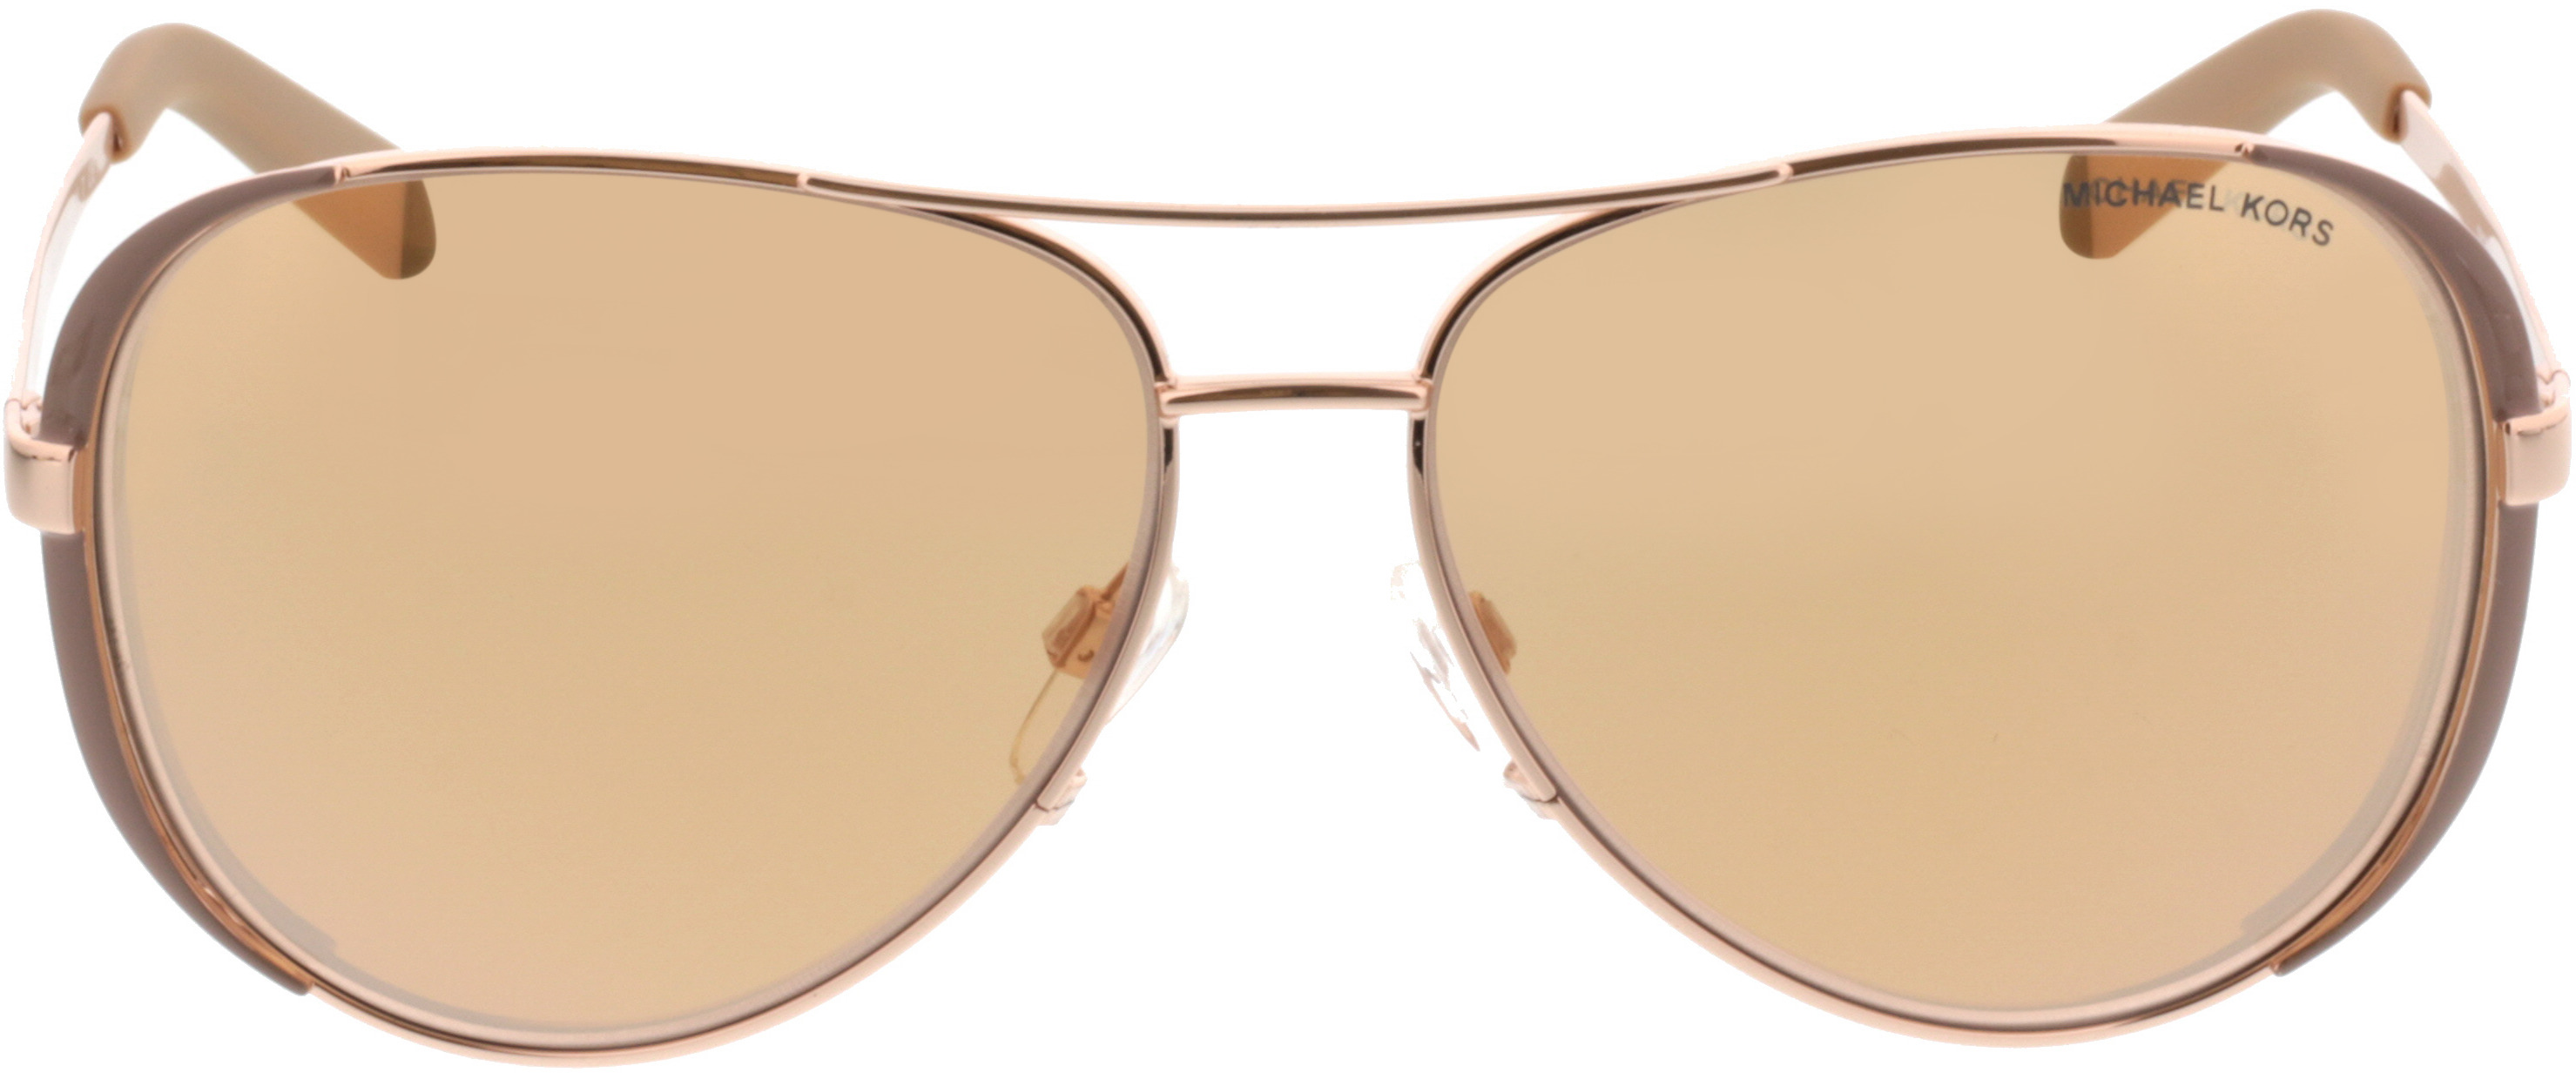 Picture of glasses model Michael Kors Chelsea MK5004 1017R1 59-13 in angle 0